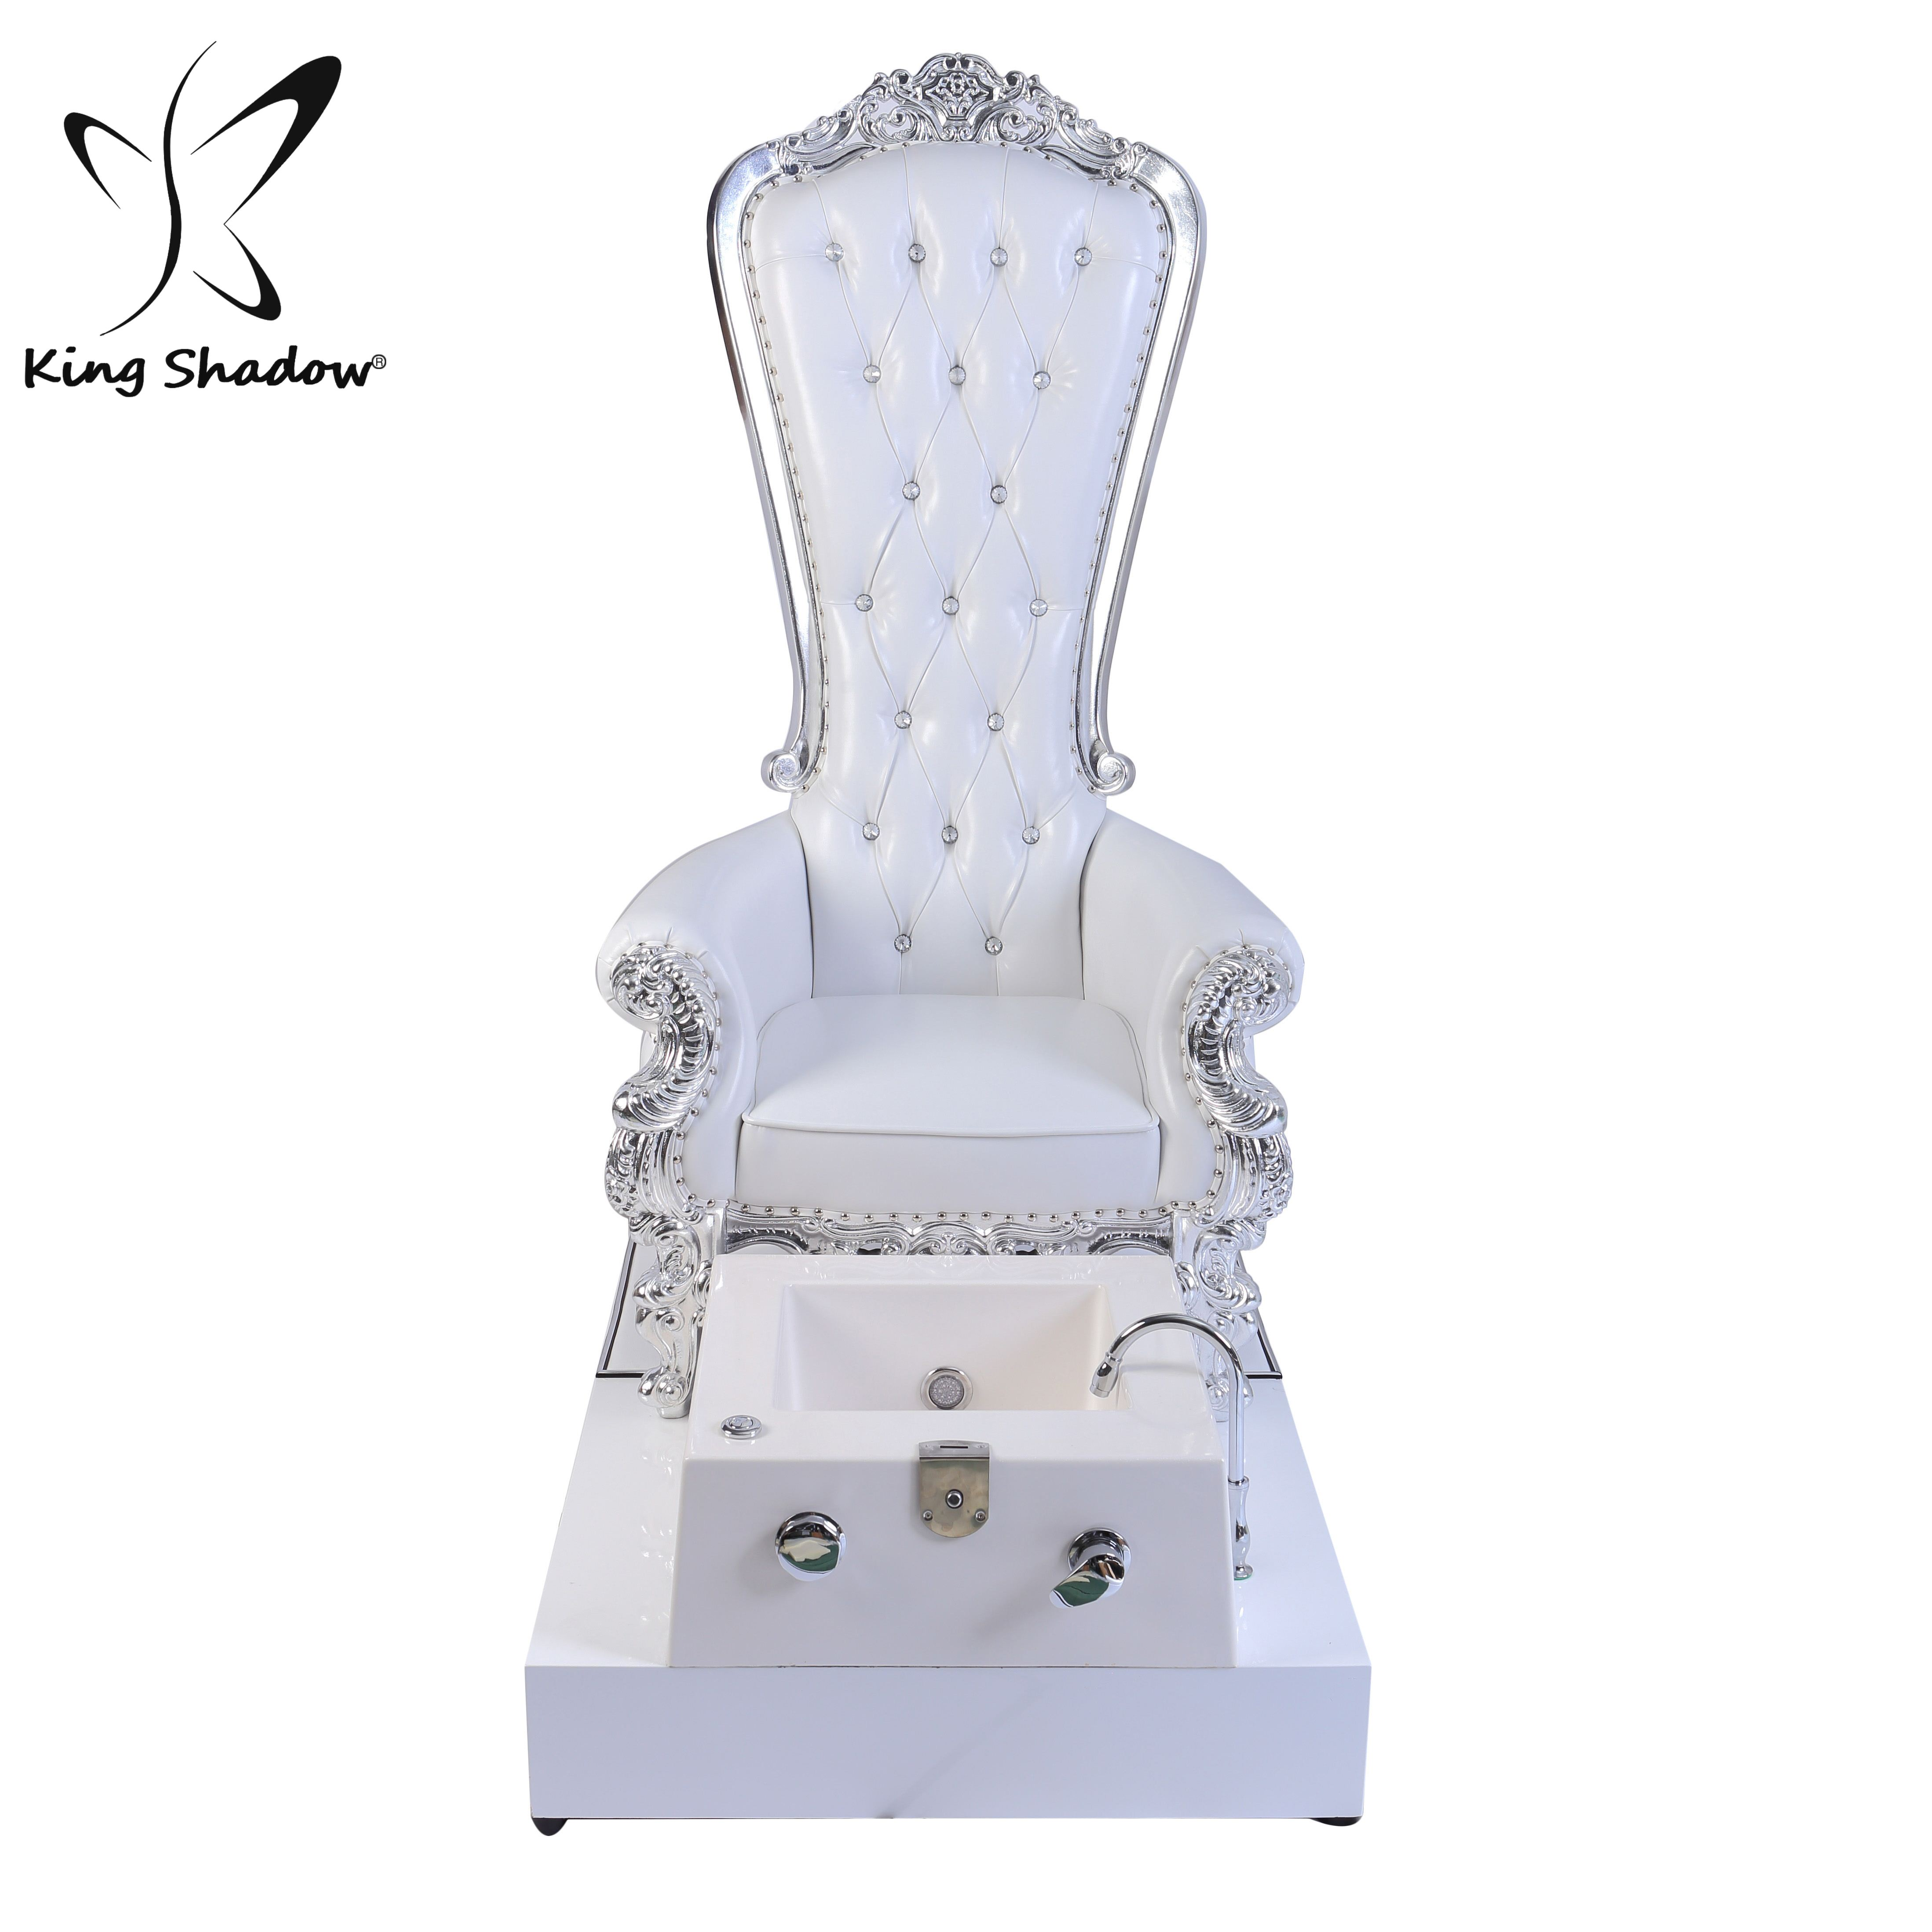 Kingshadow manicure pedicure / pedicure chair for sale / pedicure chair spa